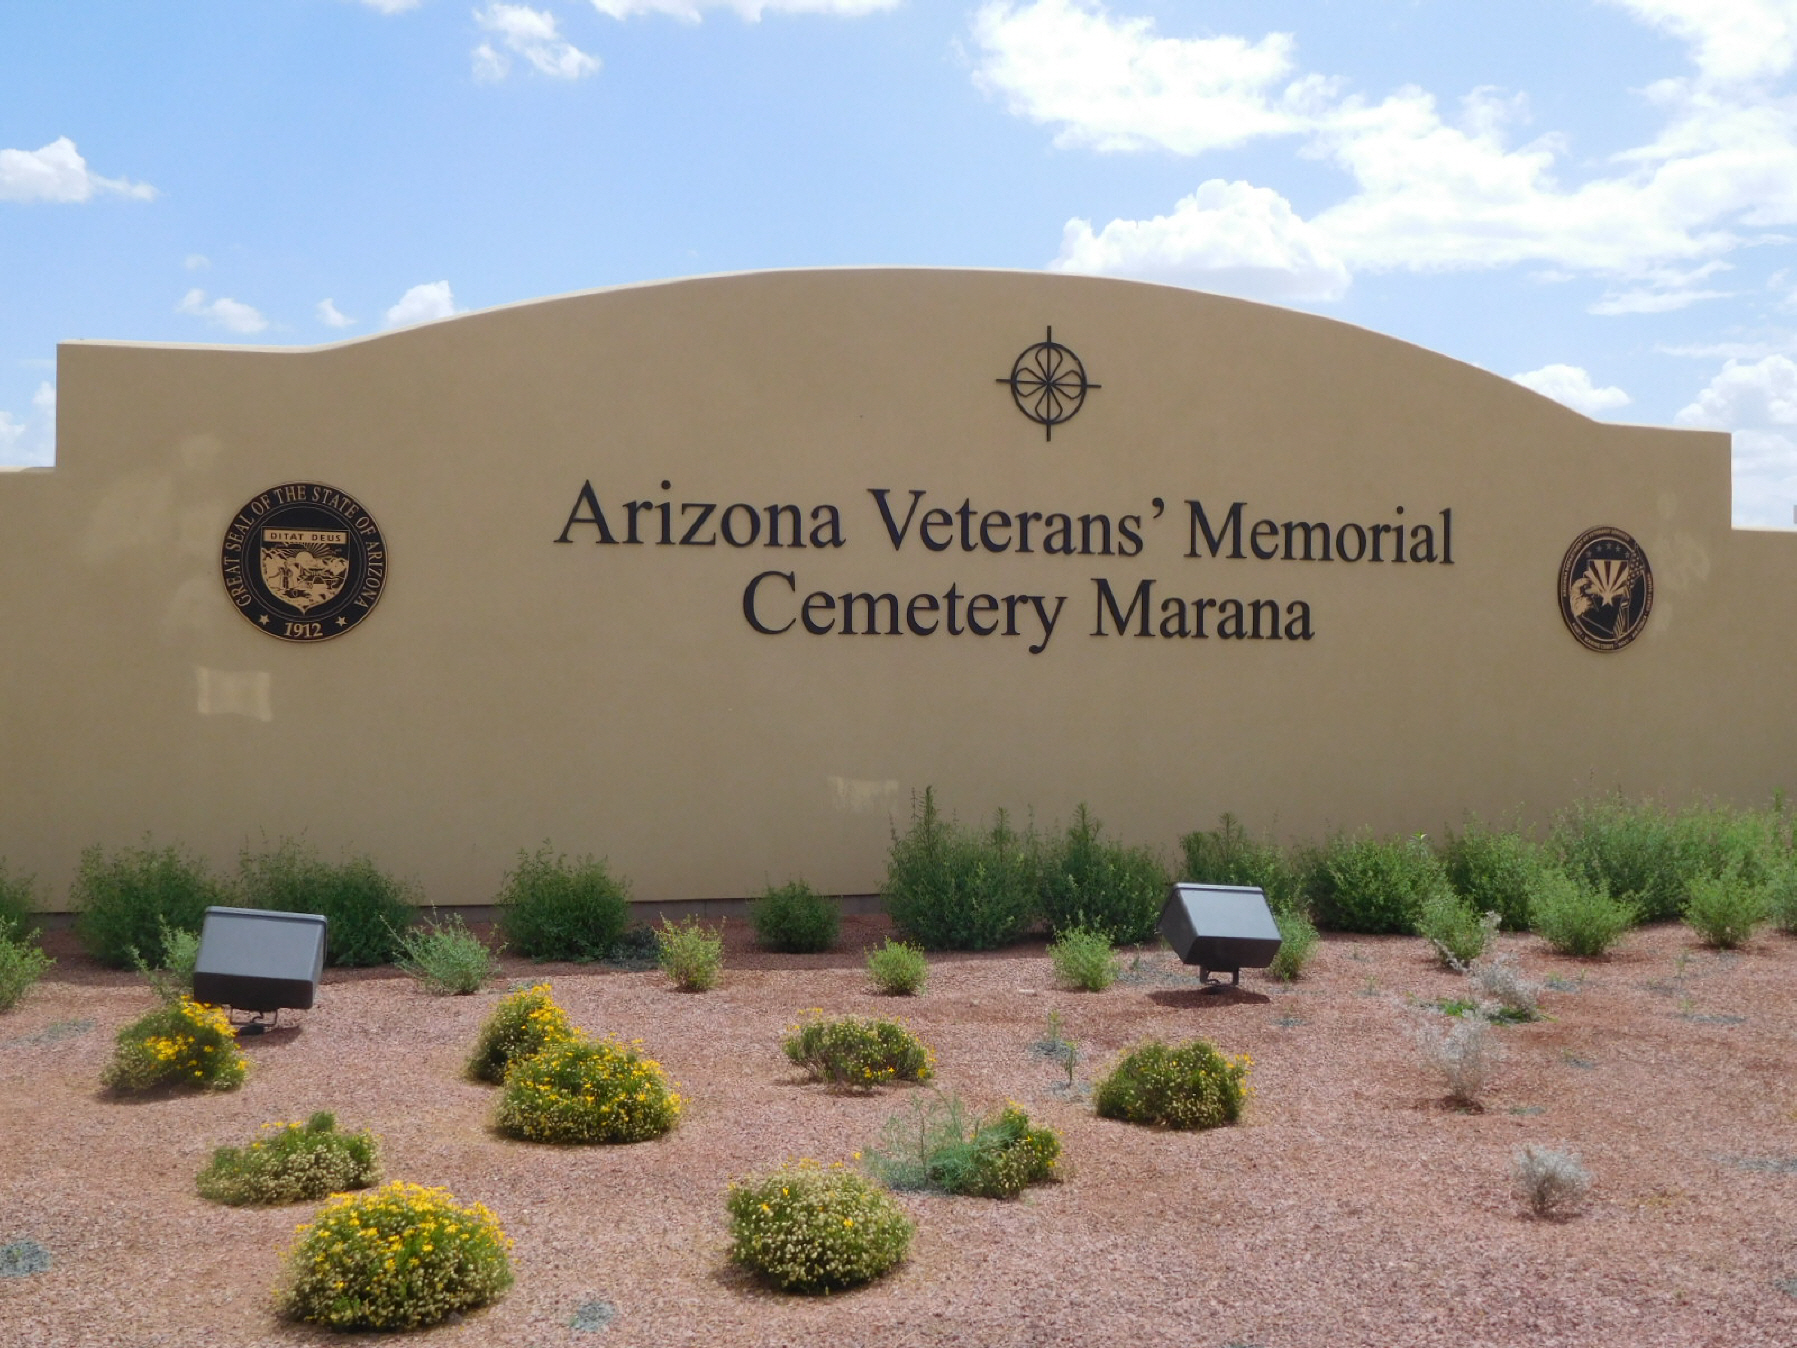 Arizona Veterans Memorial Cemetery